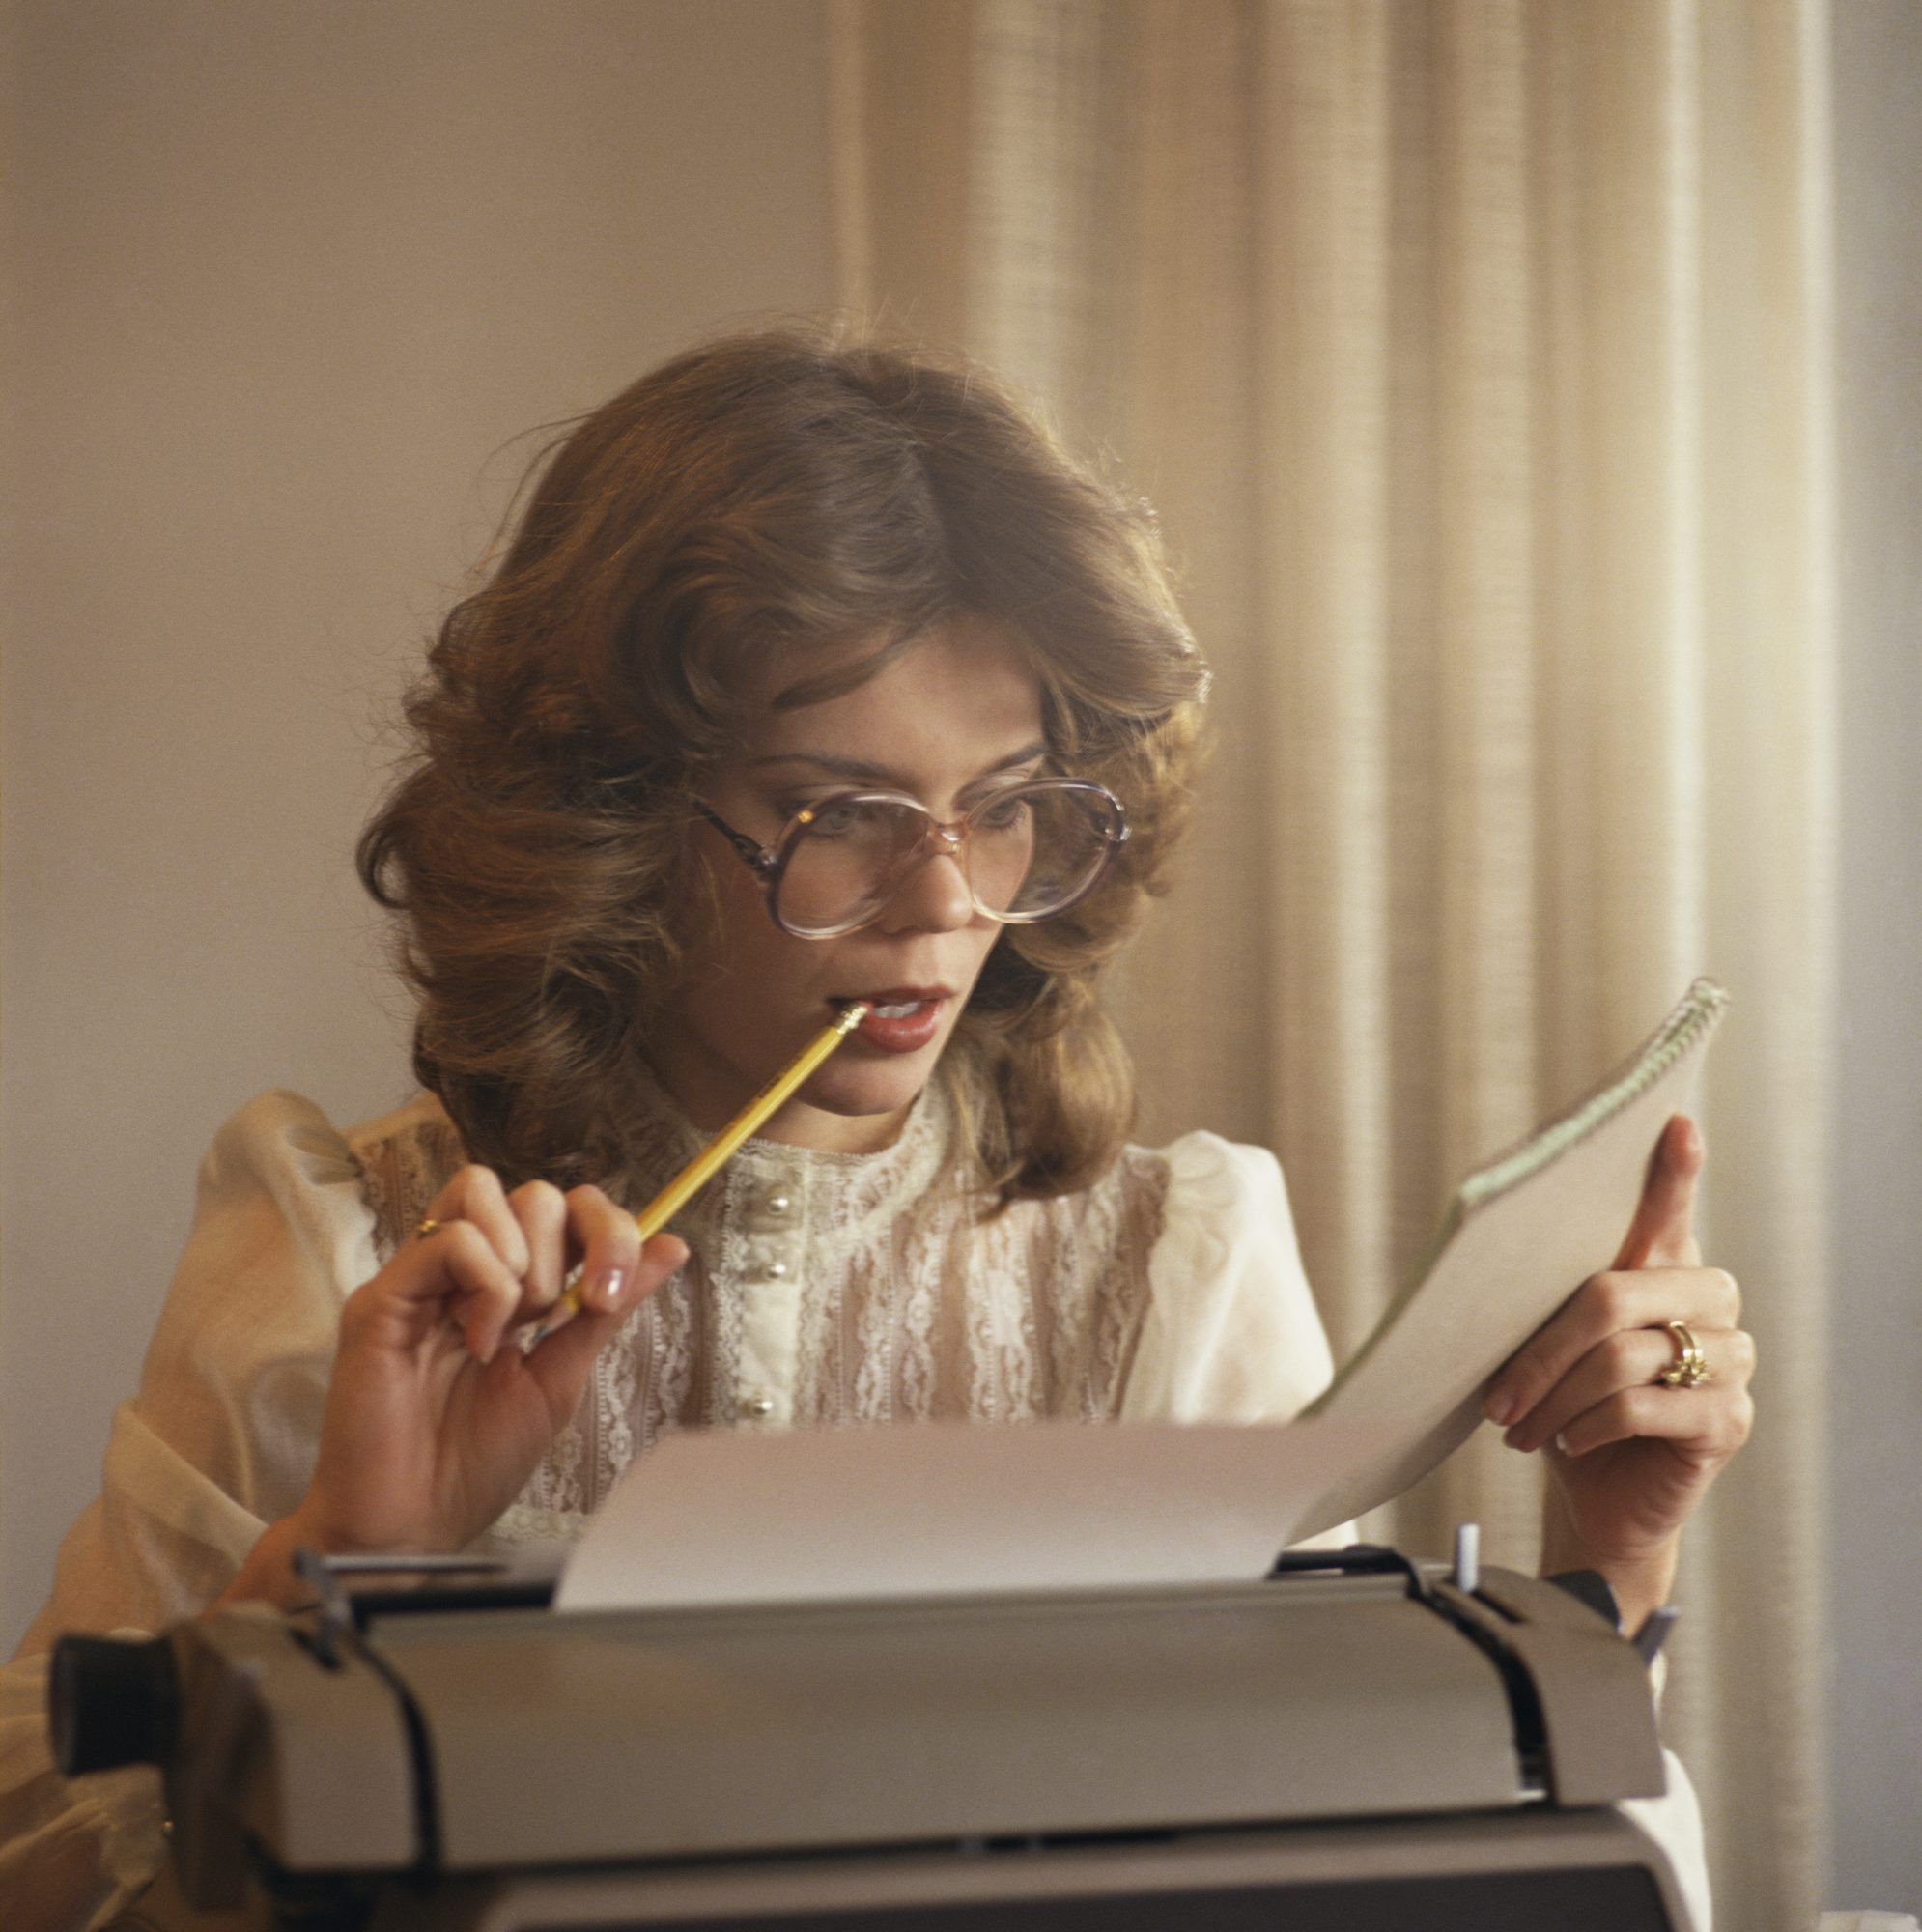 Woman working with typewriter